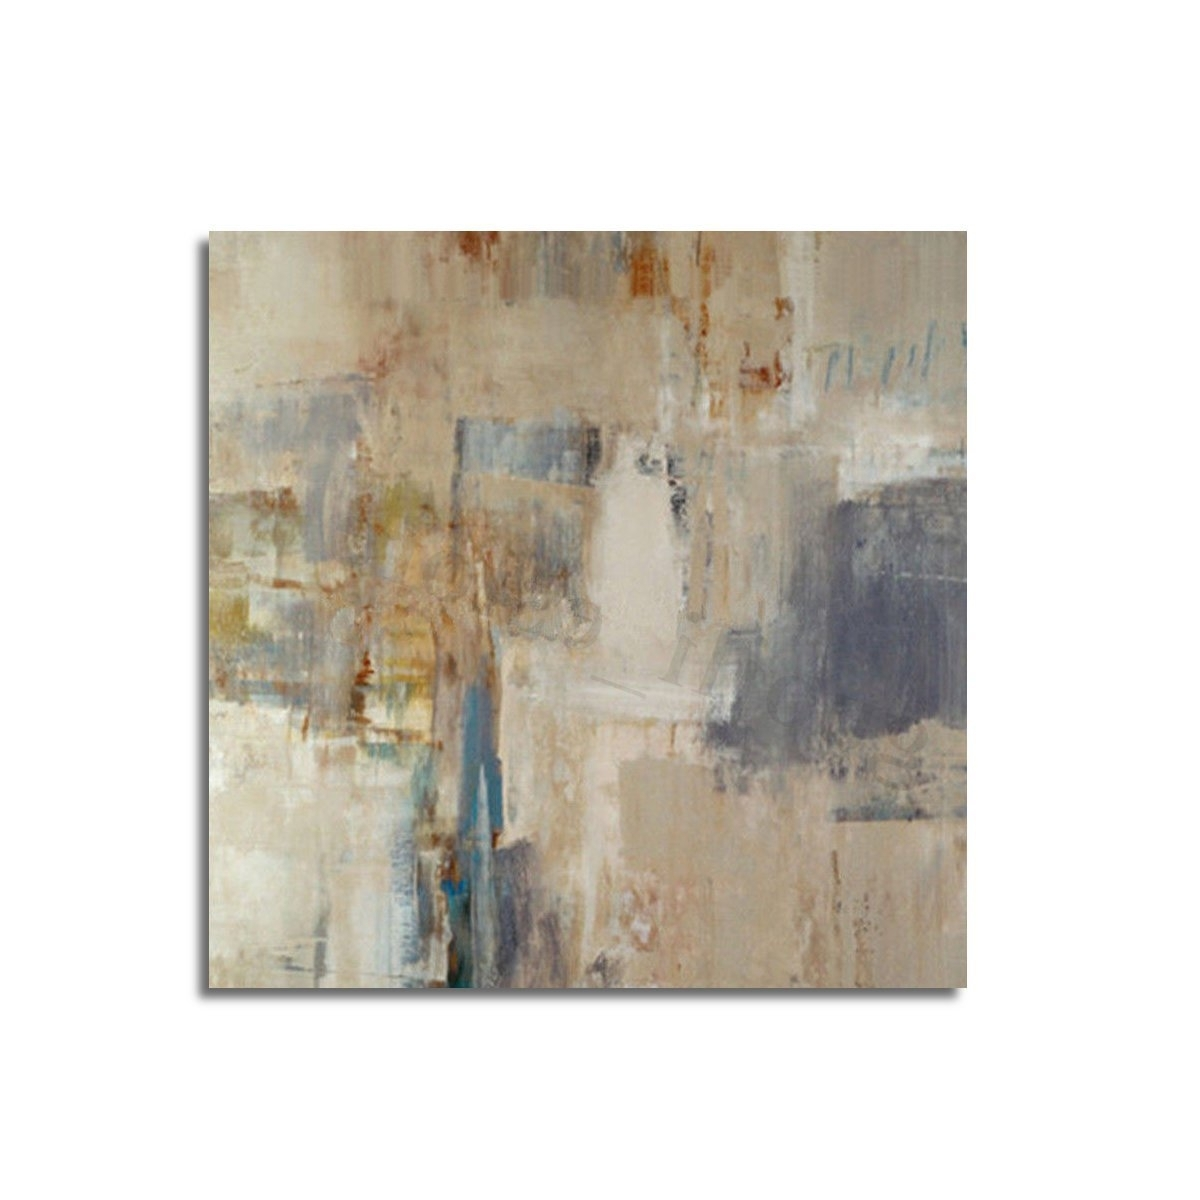 Abstract Oil Painting Wall Art Inside Most Popular 24X24'' Modern Abstract Oil Painting Canvas Wall Art Printed (View 10 of 15)